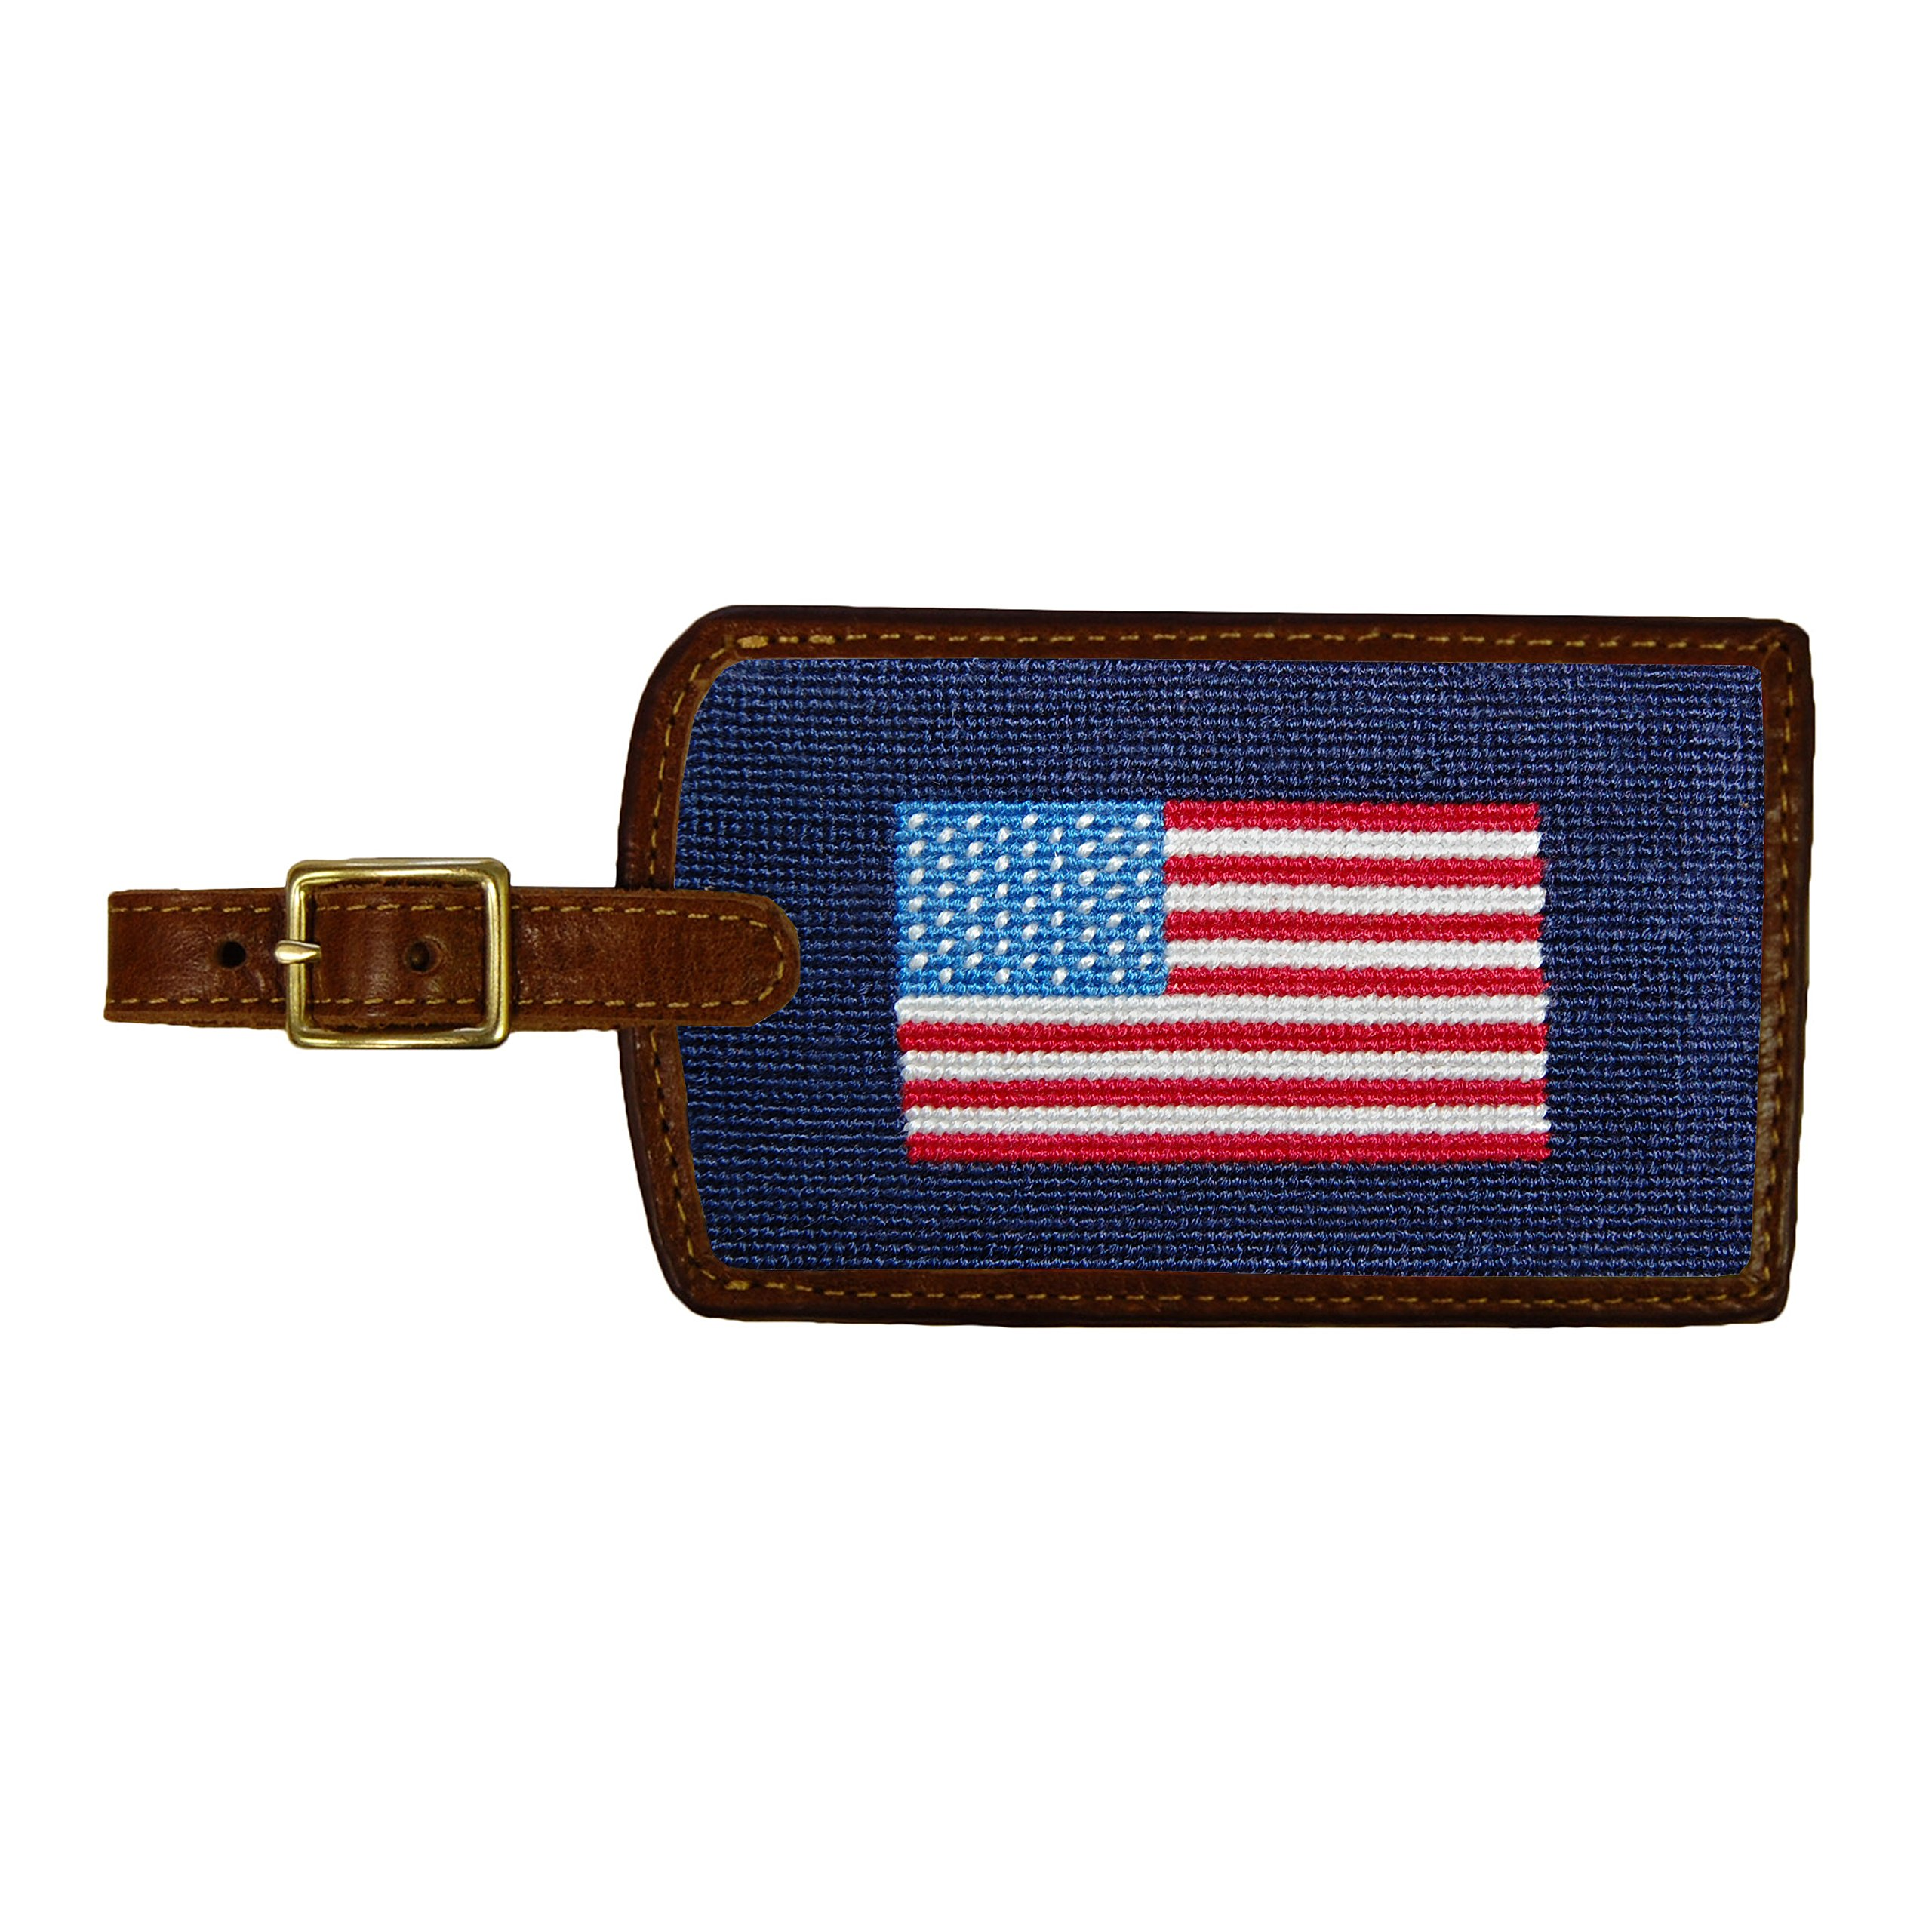 Smathers & Branson Luggage Tag American Flag/Dark Navy by Smathers & Branson